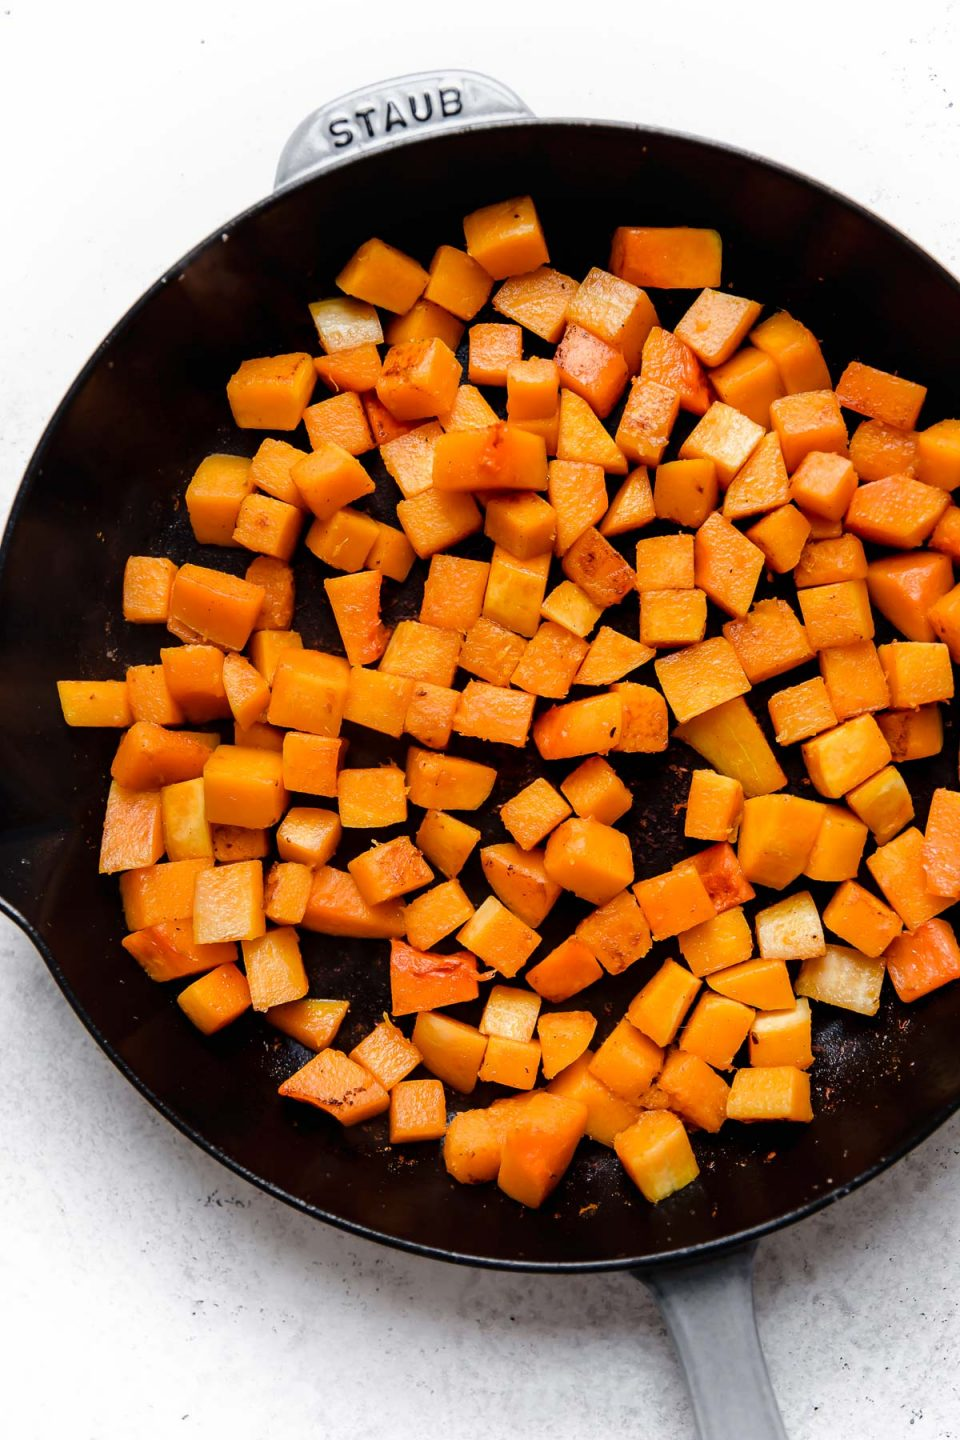 How to make vegetarian red curry step 2: Lightly charring butternut squash in a skillet.